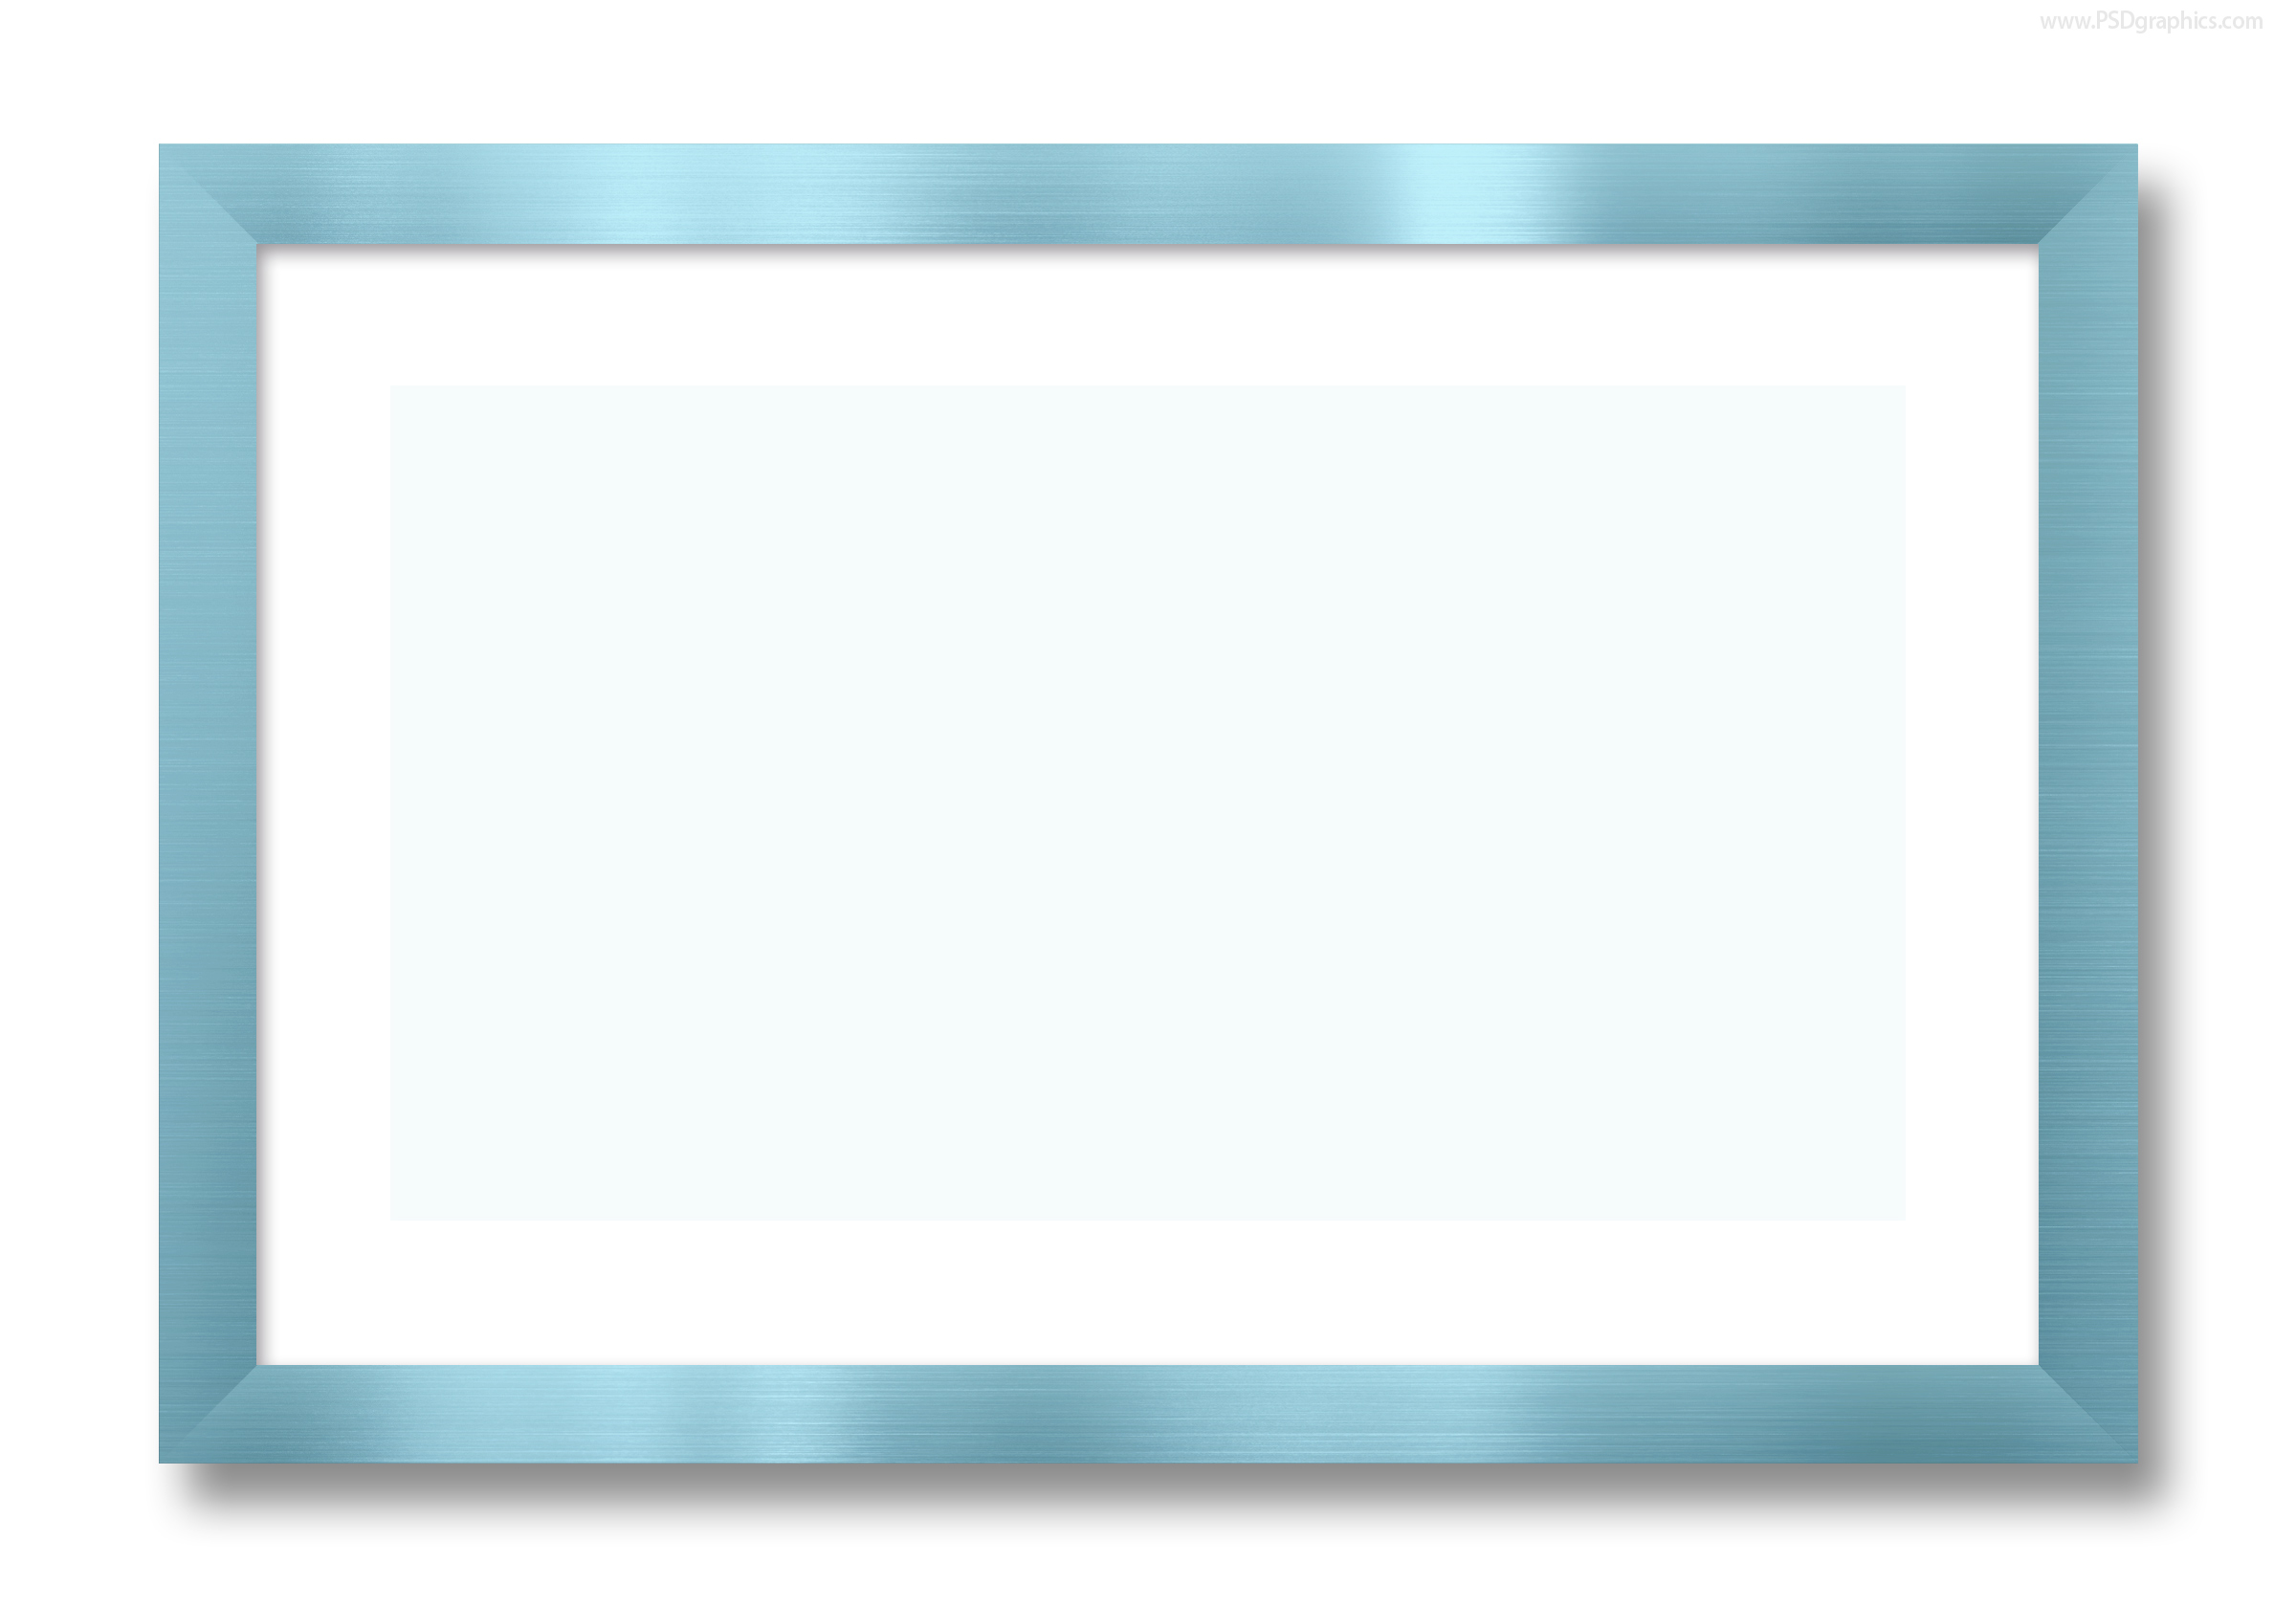 Photo frame PSD.